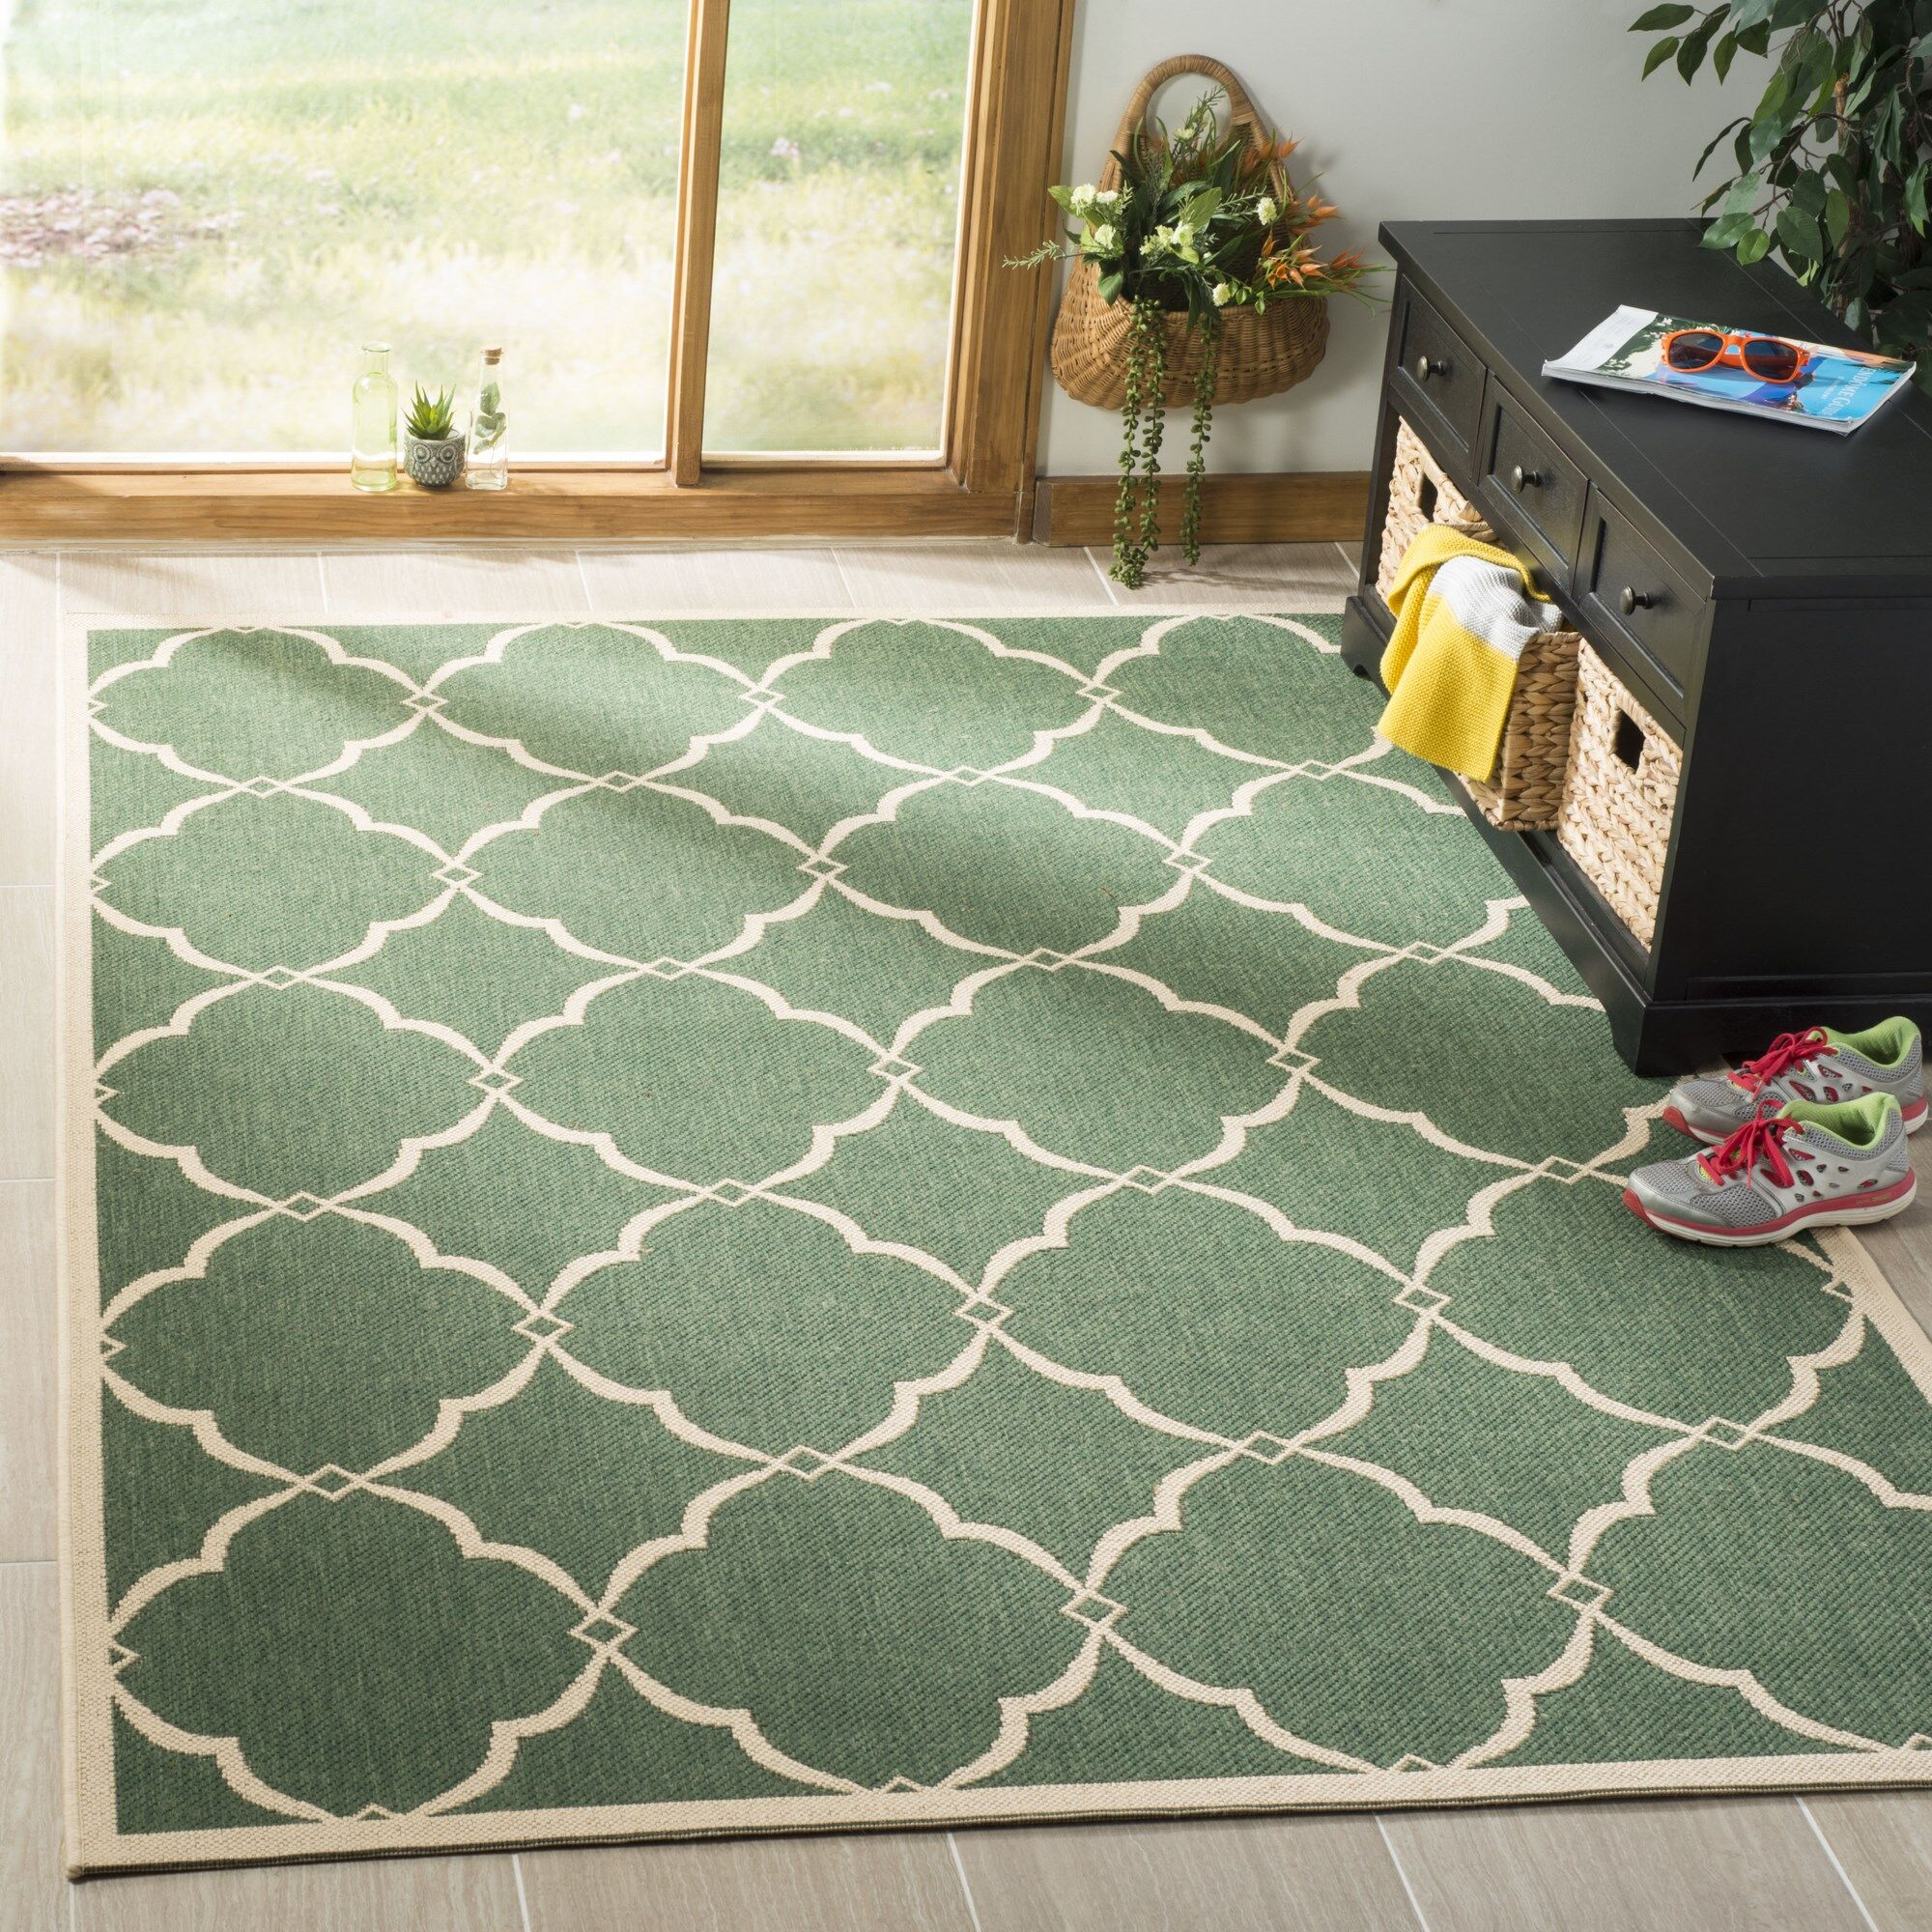 Huth Green/Cream Area Rug Rug Size: Rectangle 5'1